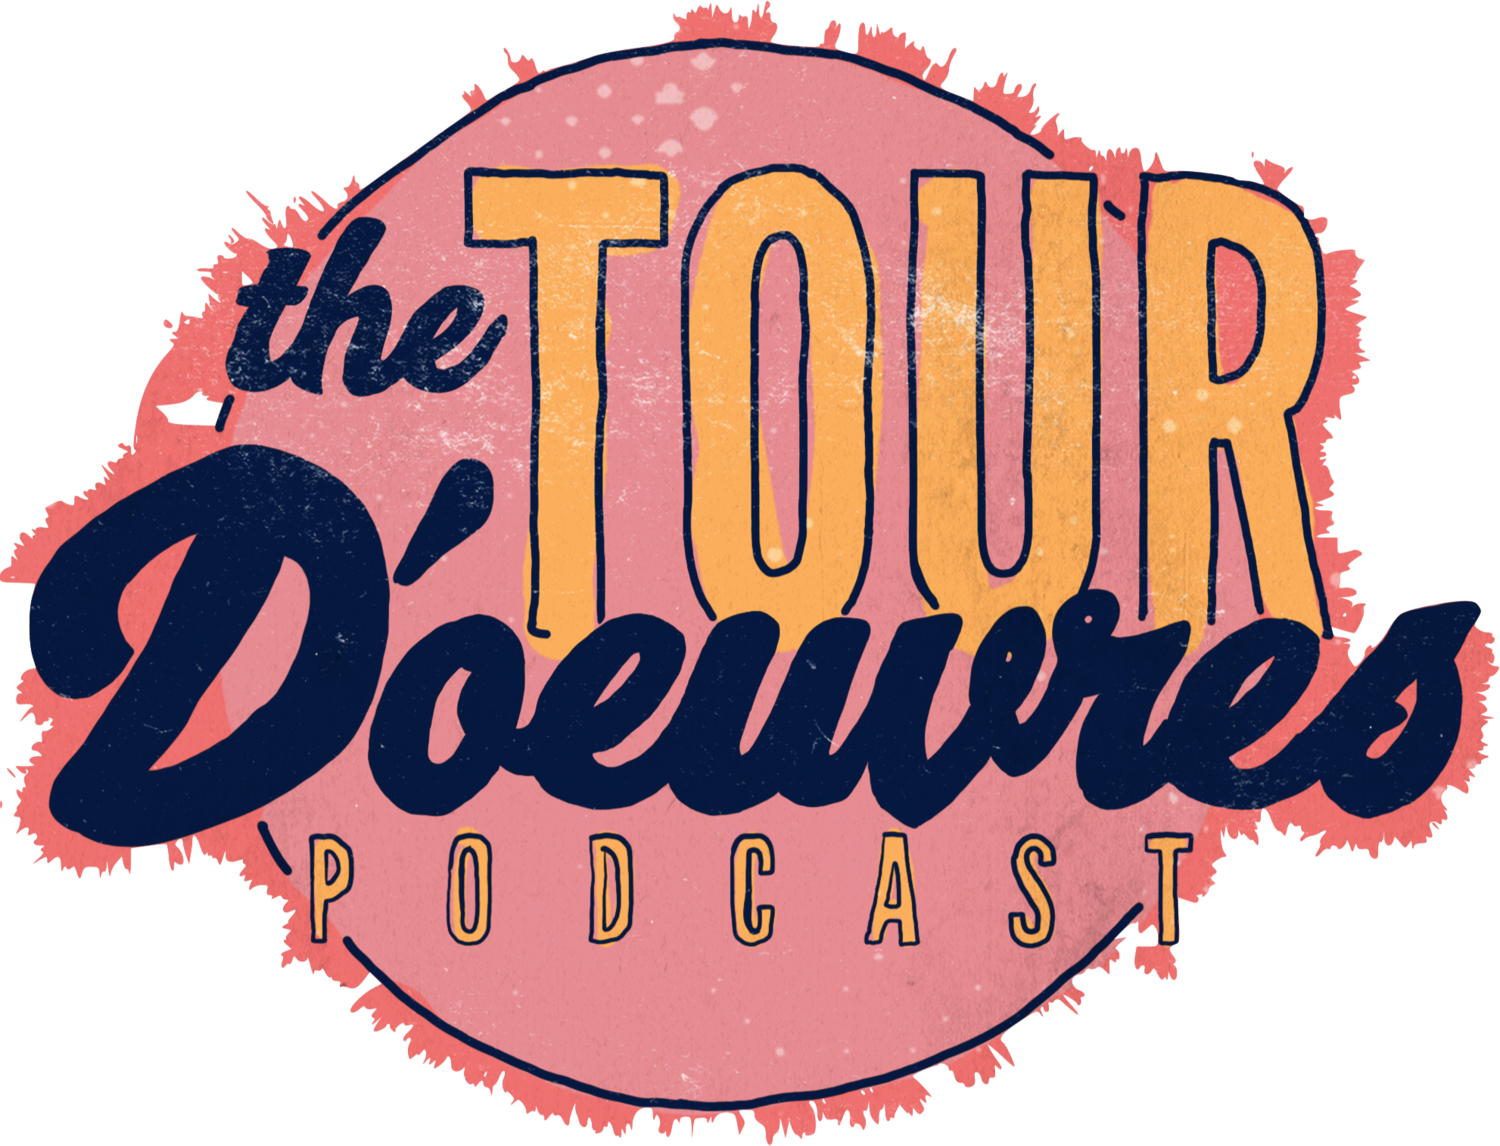 Tour D'oeuvres Podcast